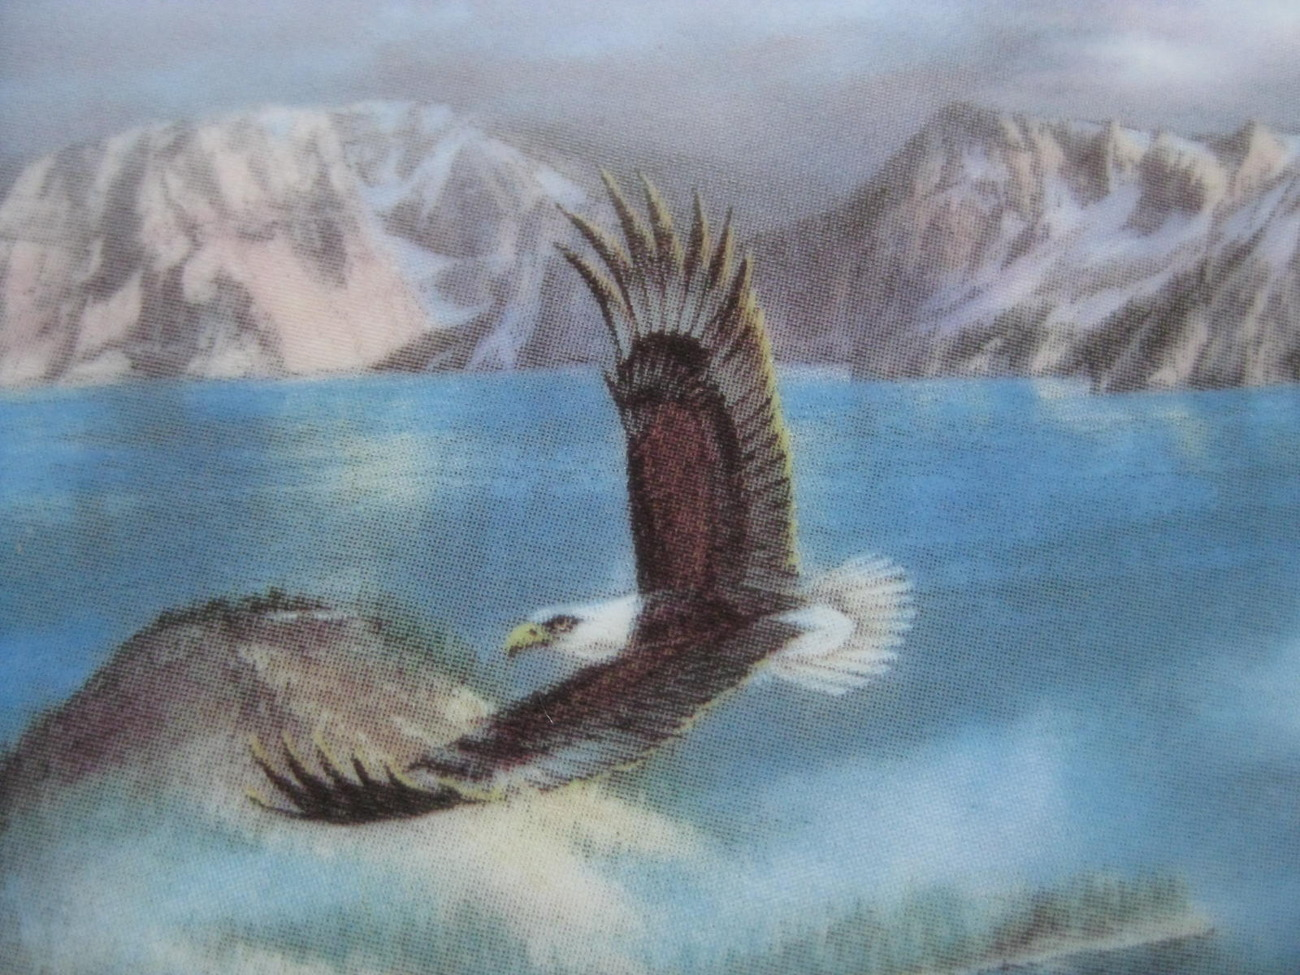 Framed Plate - FLYING FREE featuring CRATER LAKE NATIONAL PARK - Danbury Mint image 3